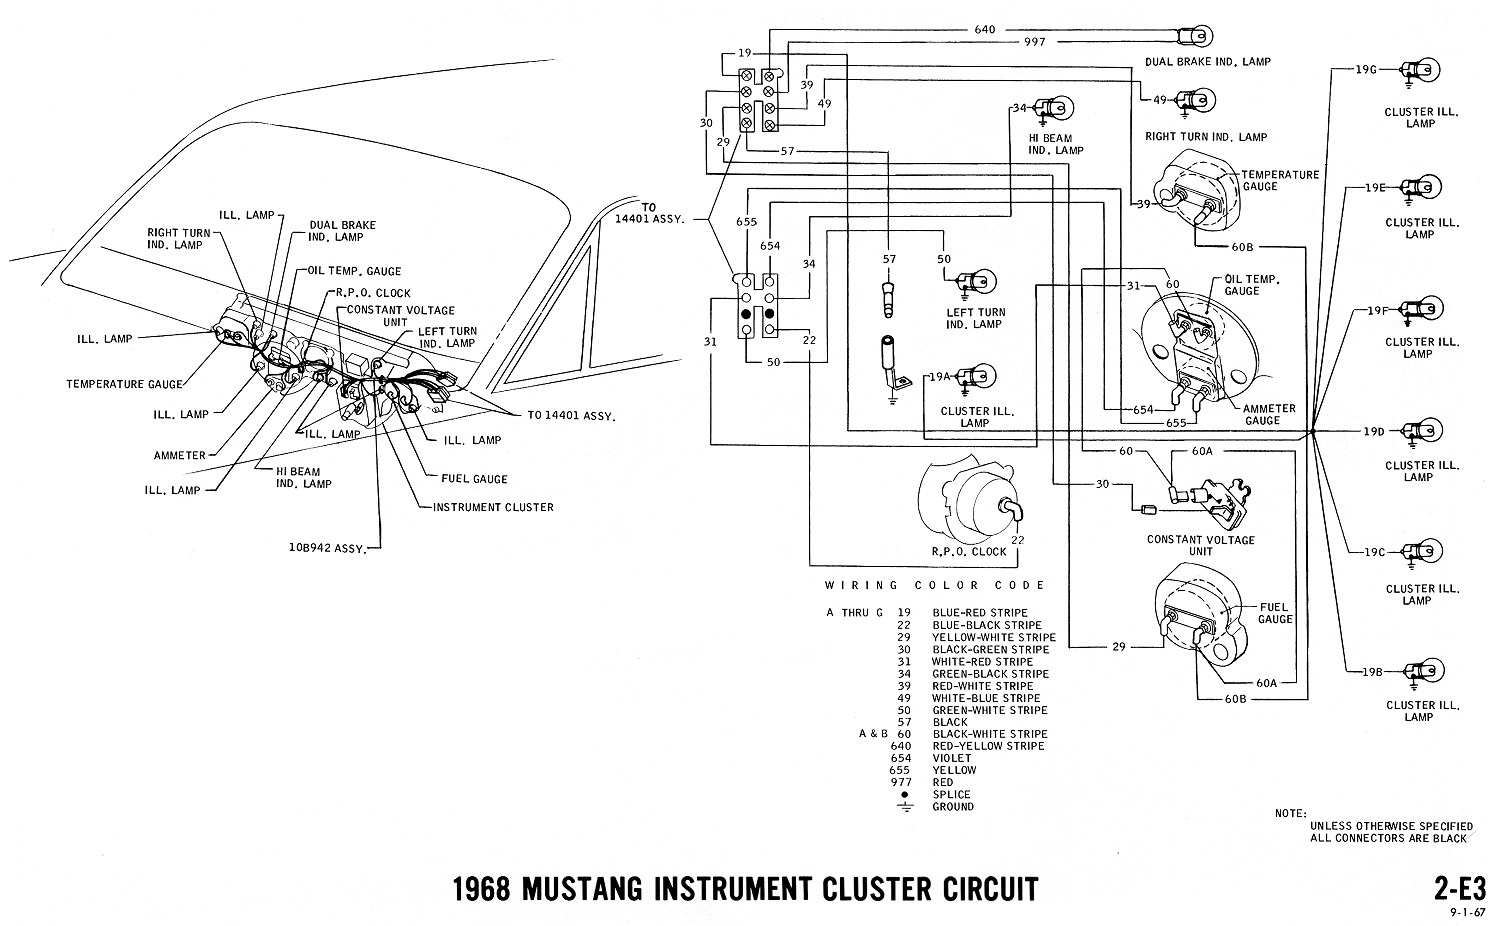 1968 mustang wiring diagram instruments 1968 mustang wiring diagram 1966 mustang wiring diagrams \u2022 free 1966 mustang heater wiring diagram at bayanpartner.co